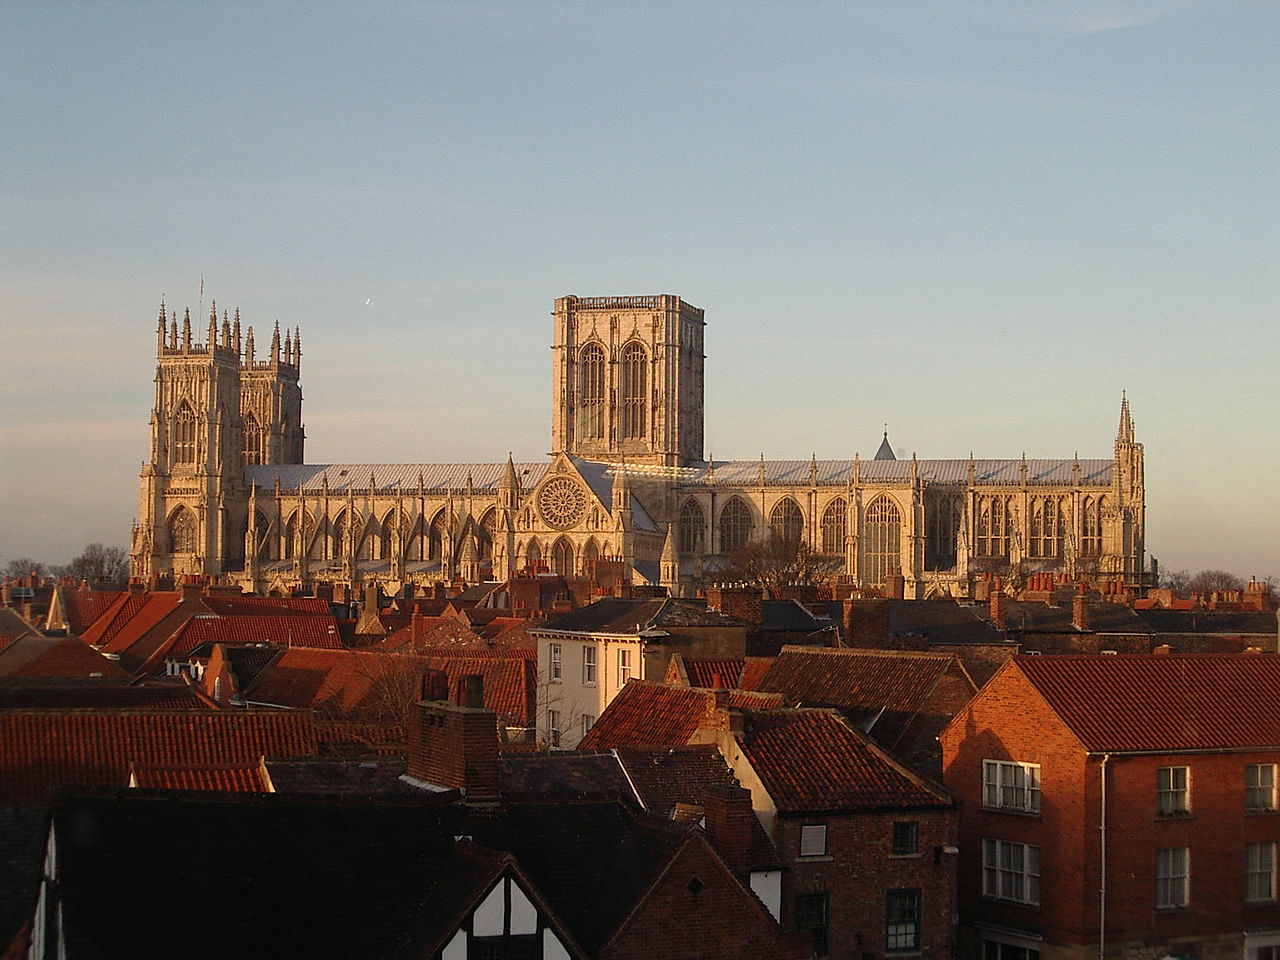 York Minster seen from the side - a long building with a pair of towers at one end and a massive central tower with two perpendicular windows. The round rose window can be seen on the south transcept.